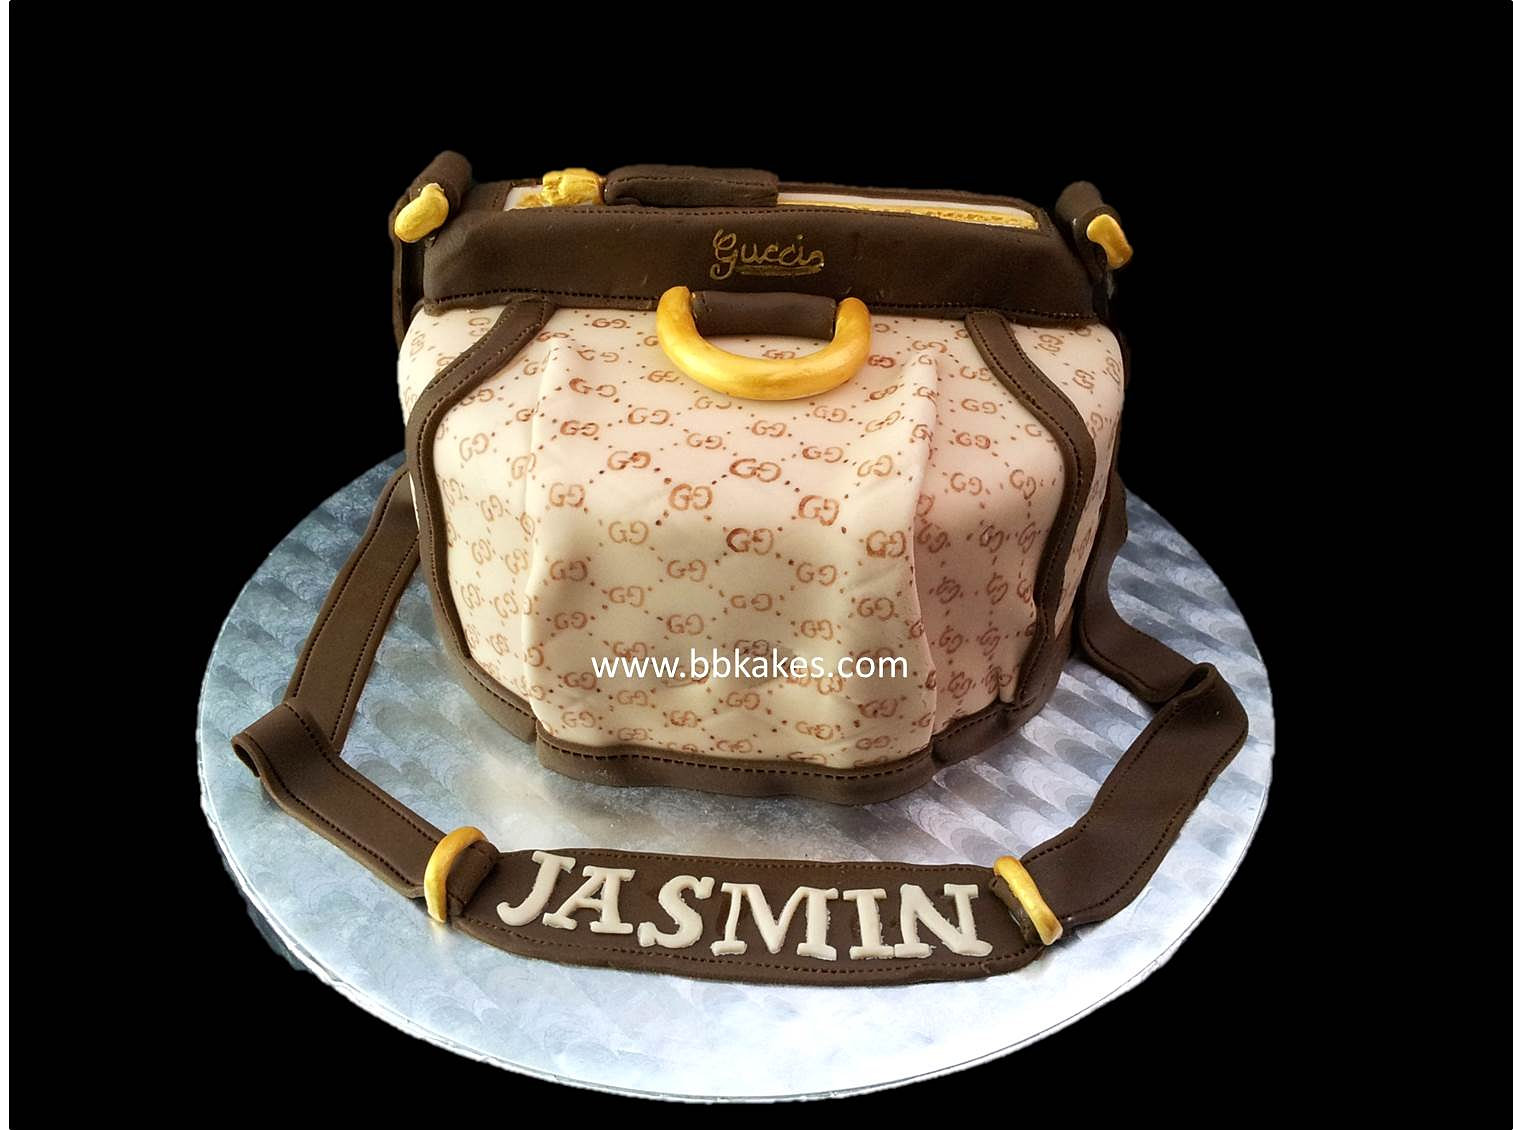 Gucci Bag Cake Images